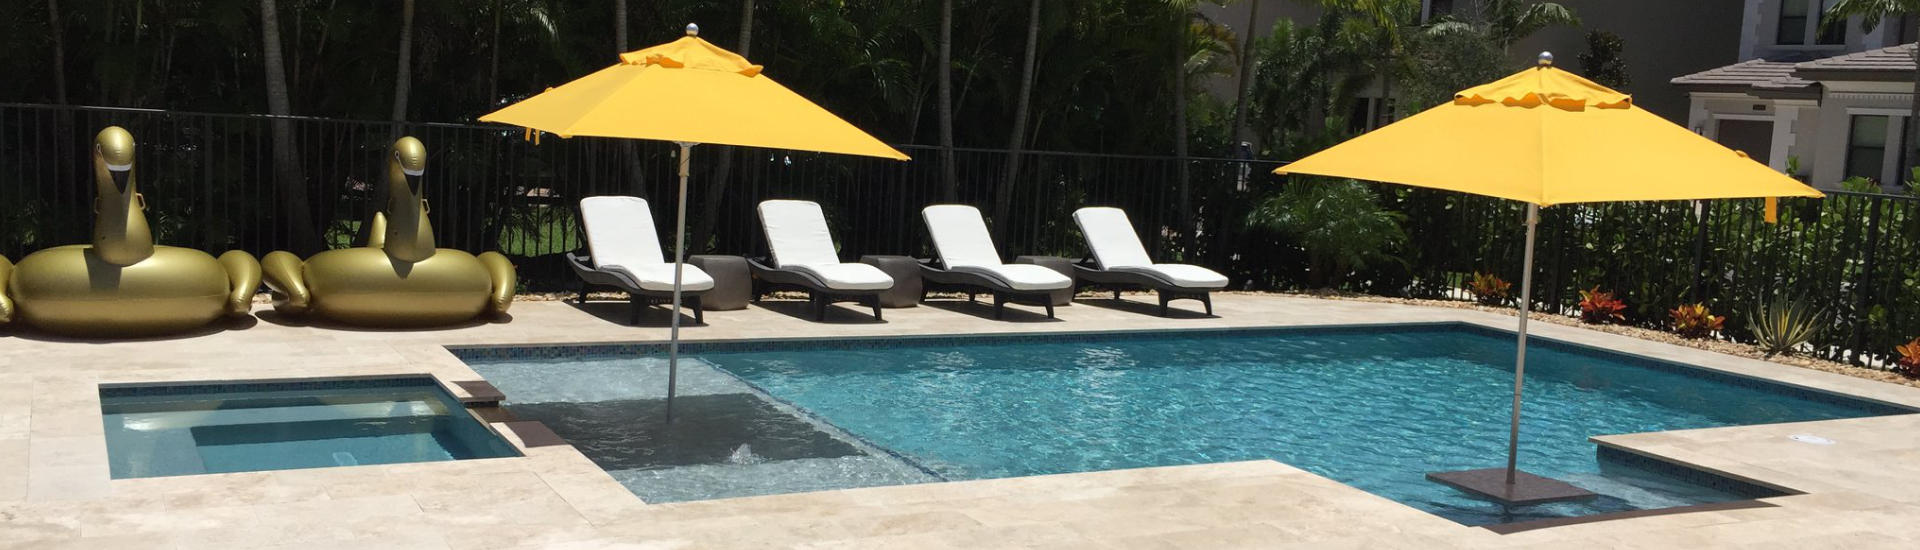 sunbeds by a backyard swimming pool with sun umbrellas insalled in water